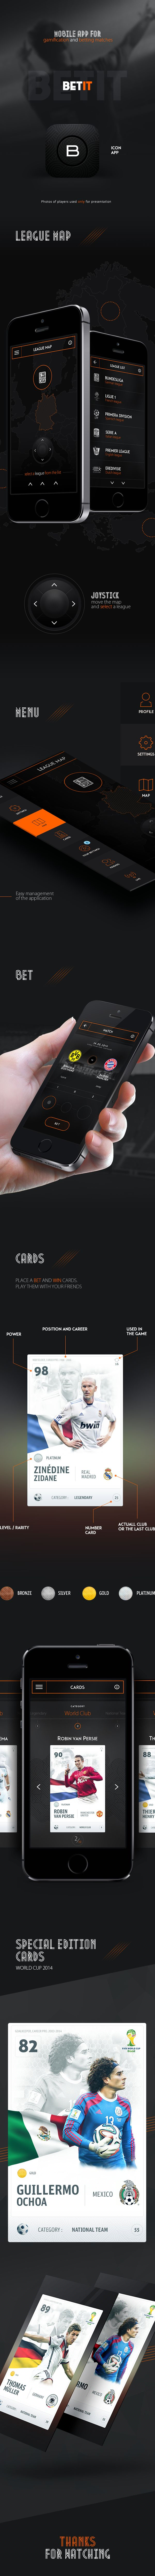 Betit Mobile App - Football by Karol Kos, via Behance